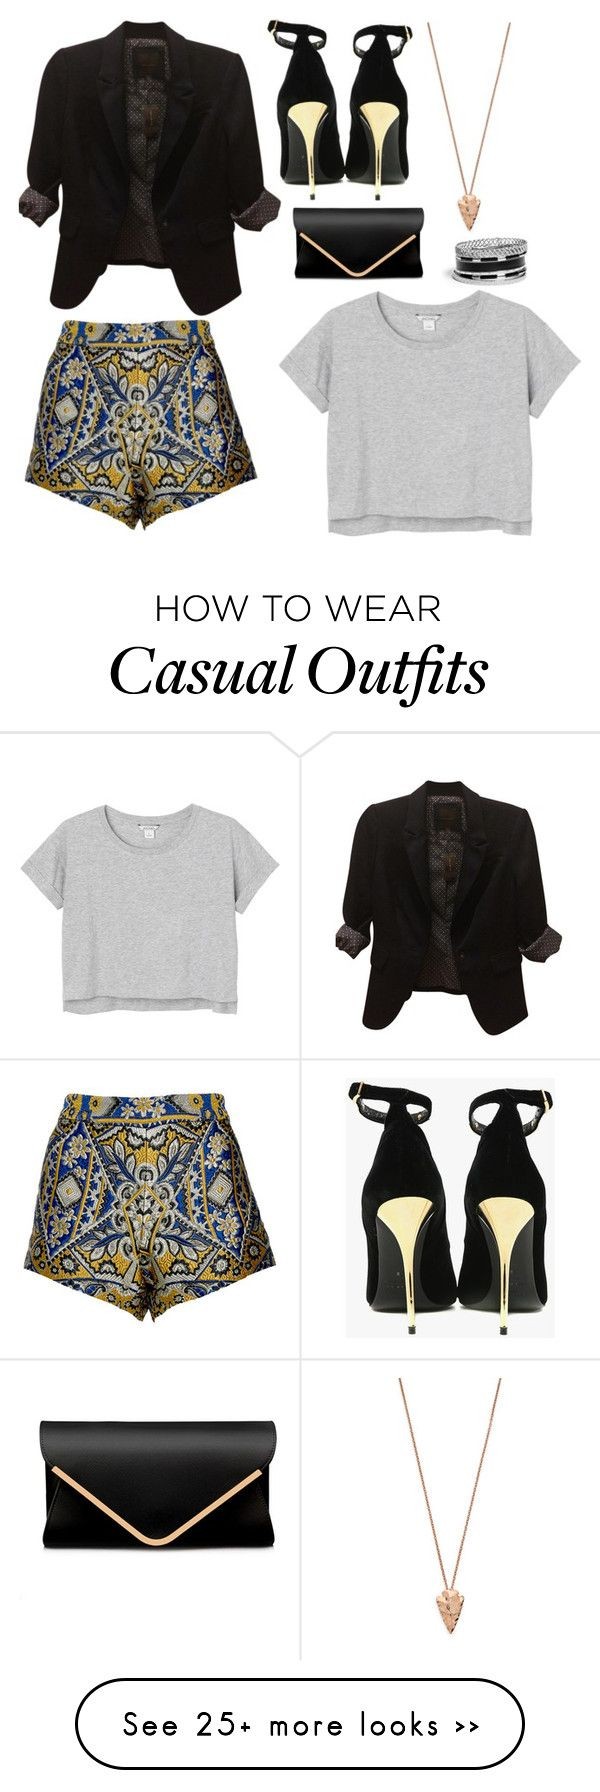 """""""Casual"""" by roxane-murekatete on Polyvore featuring The Limited, Monki, Pamela Love, GUESS and Balmain"""